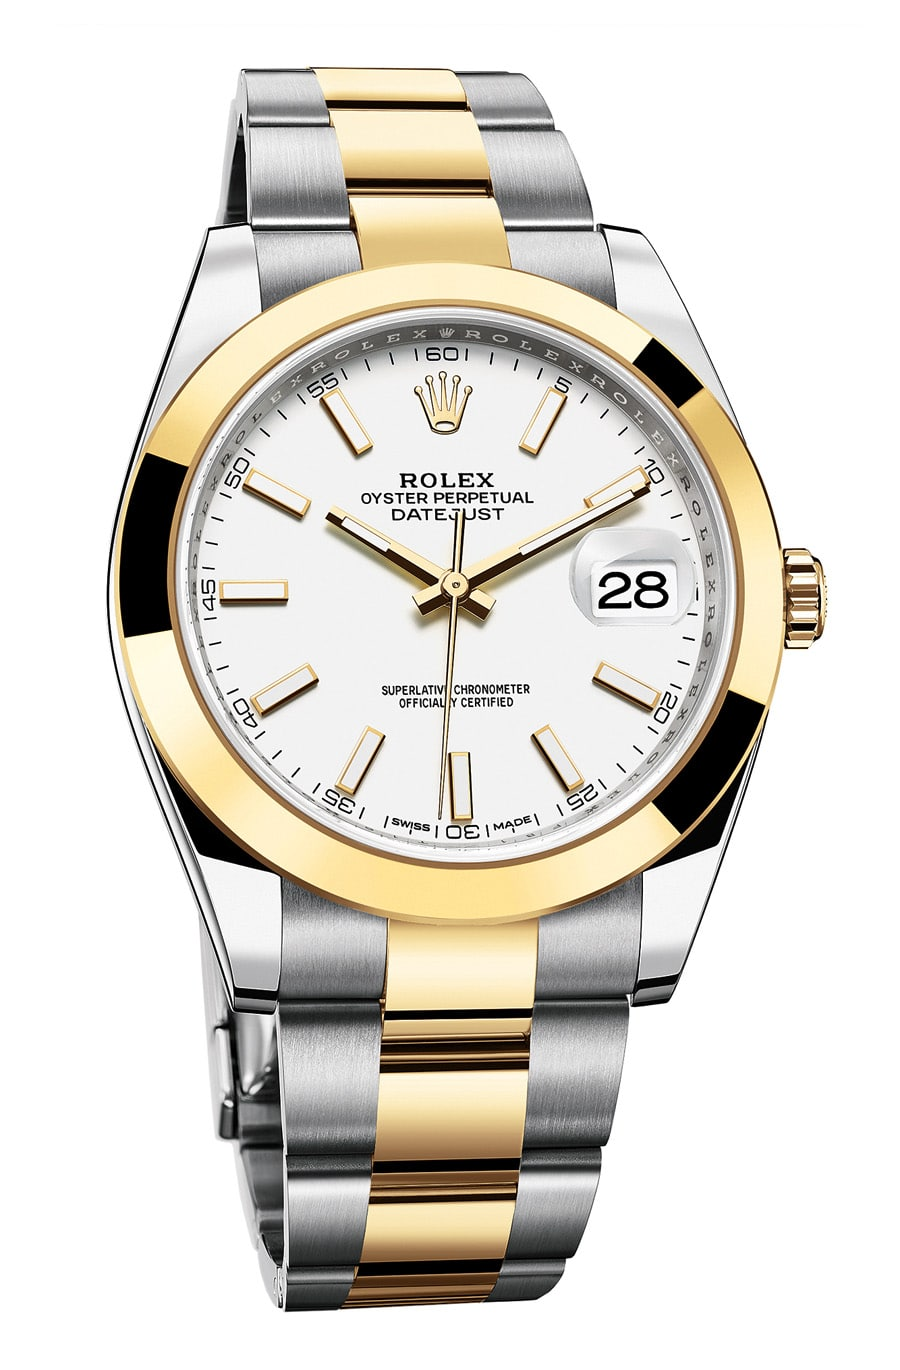 Rolex: Oyster Perpetual Datejust 41 in Rolesor gelb mit Oyster-Band